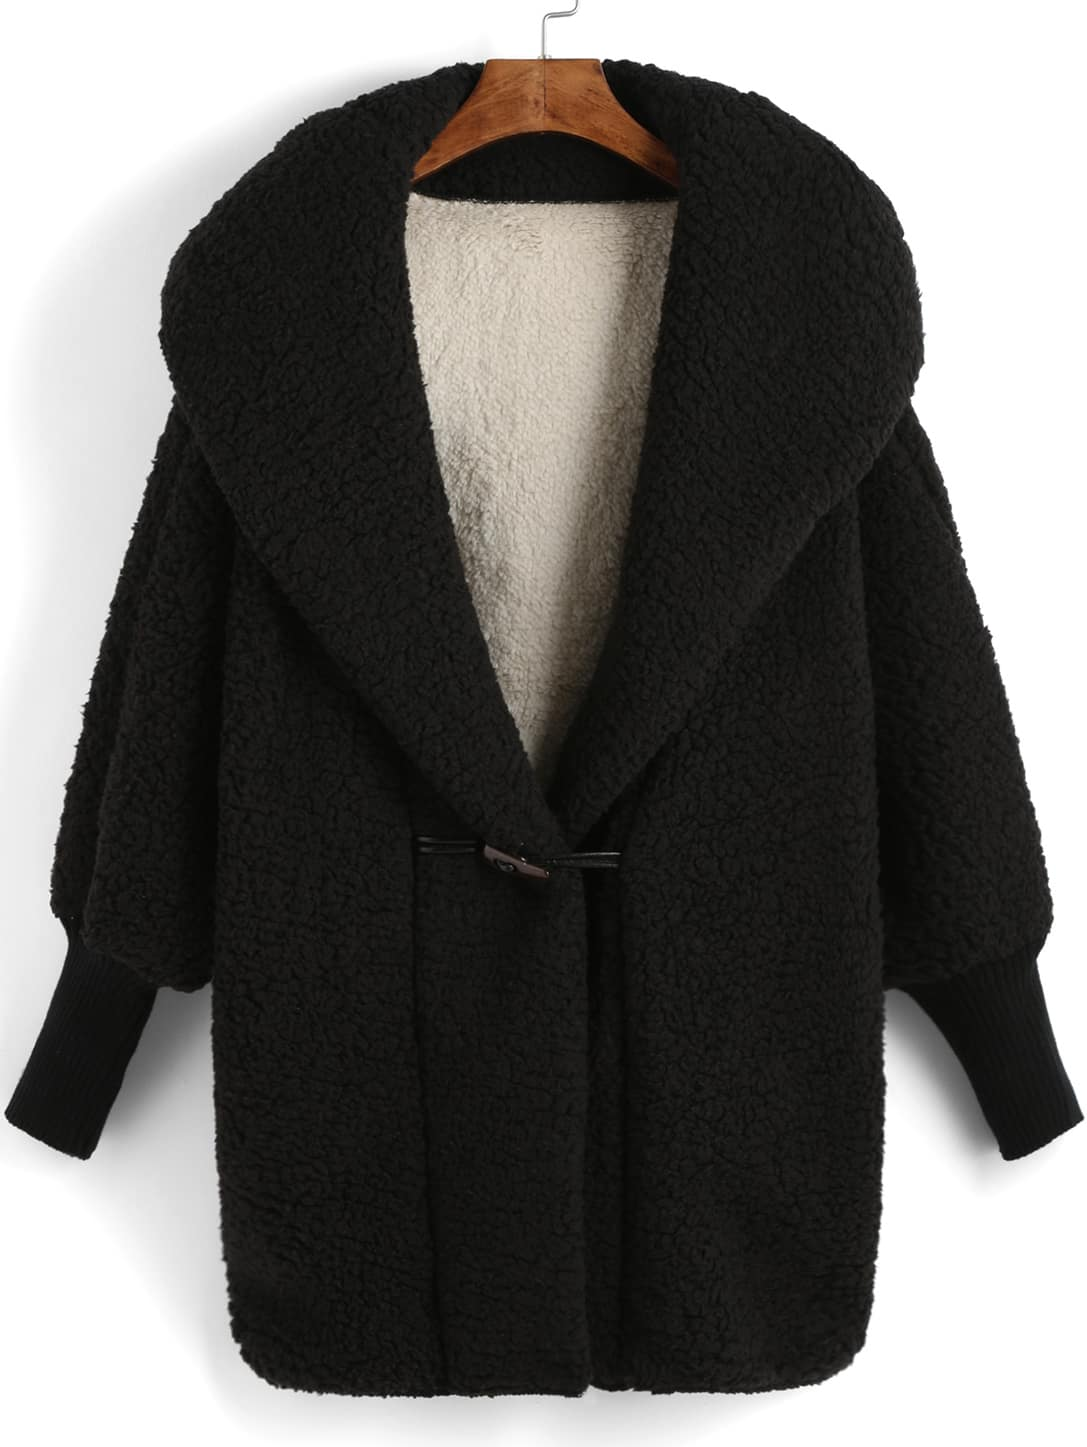 Black Hooded Horns Deduction Loose Coat